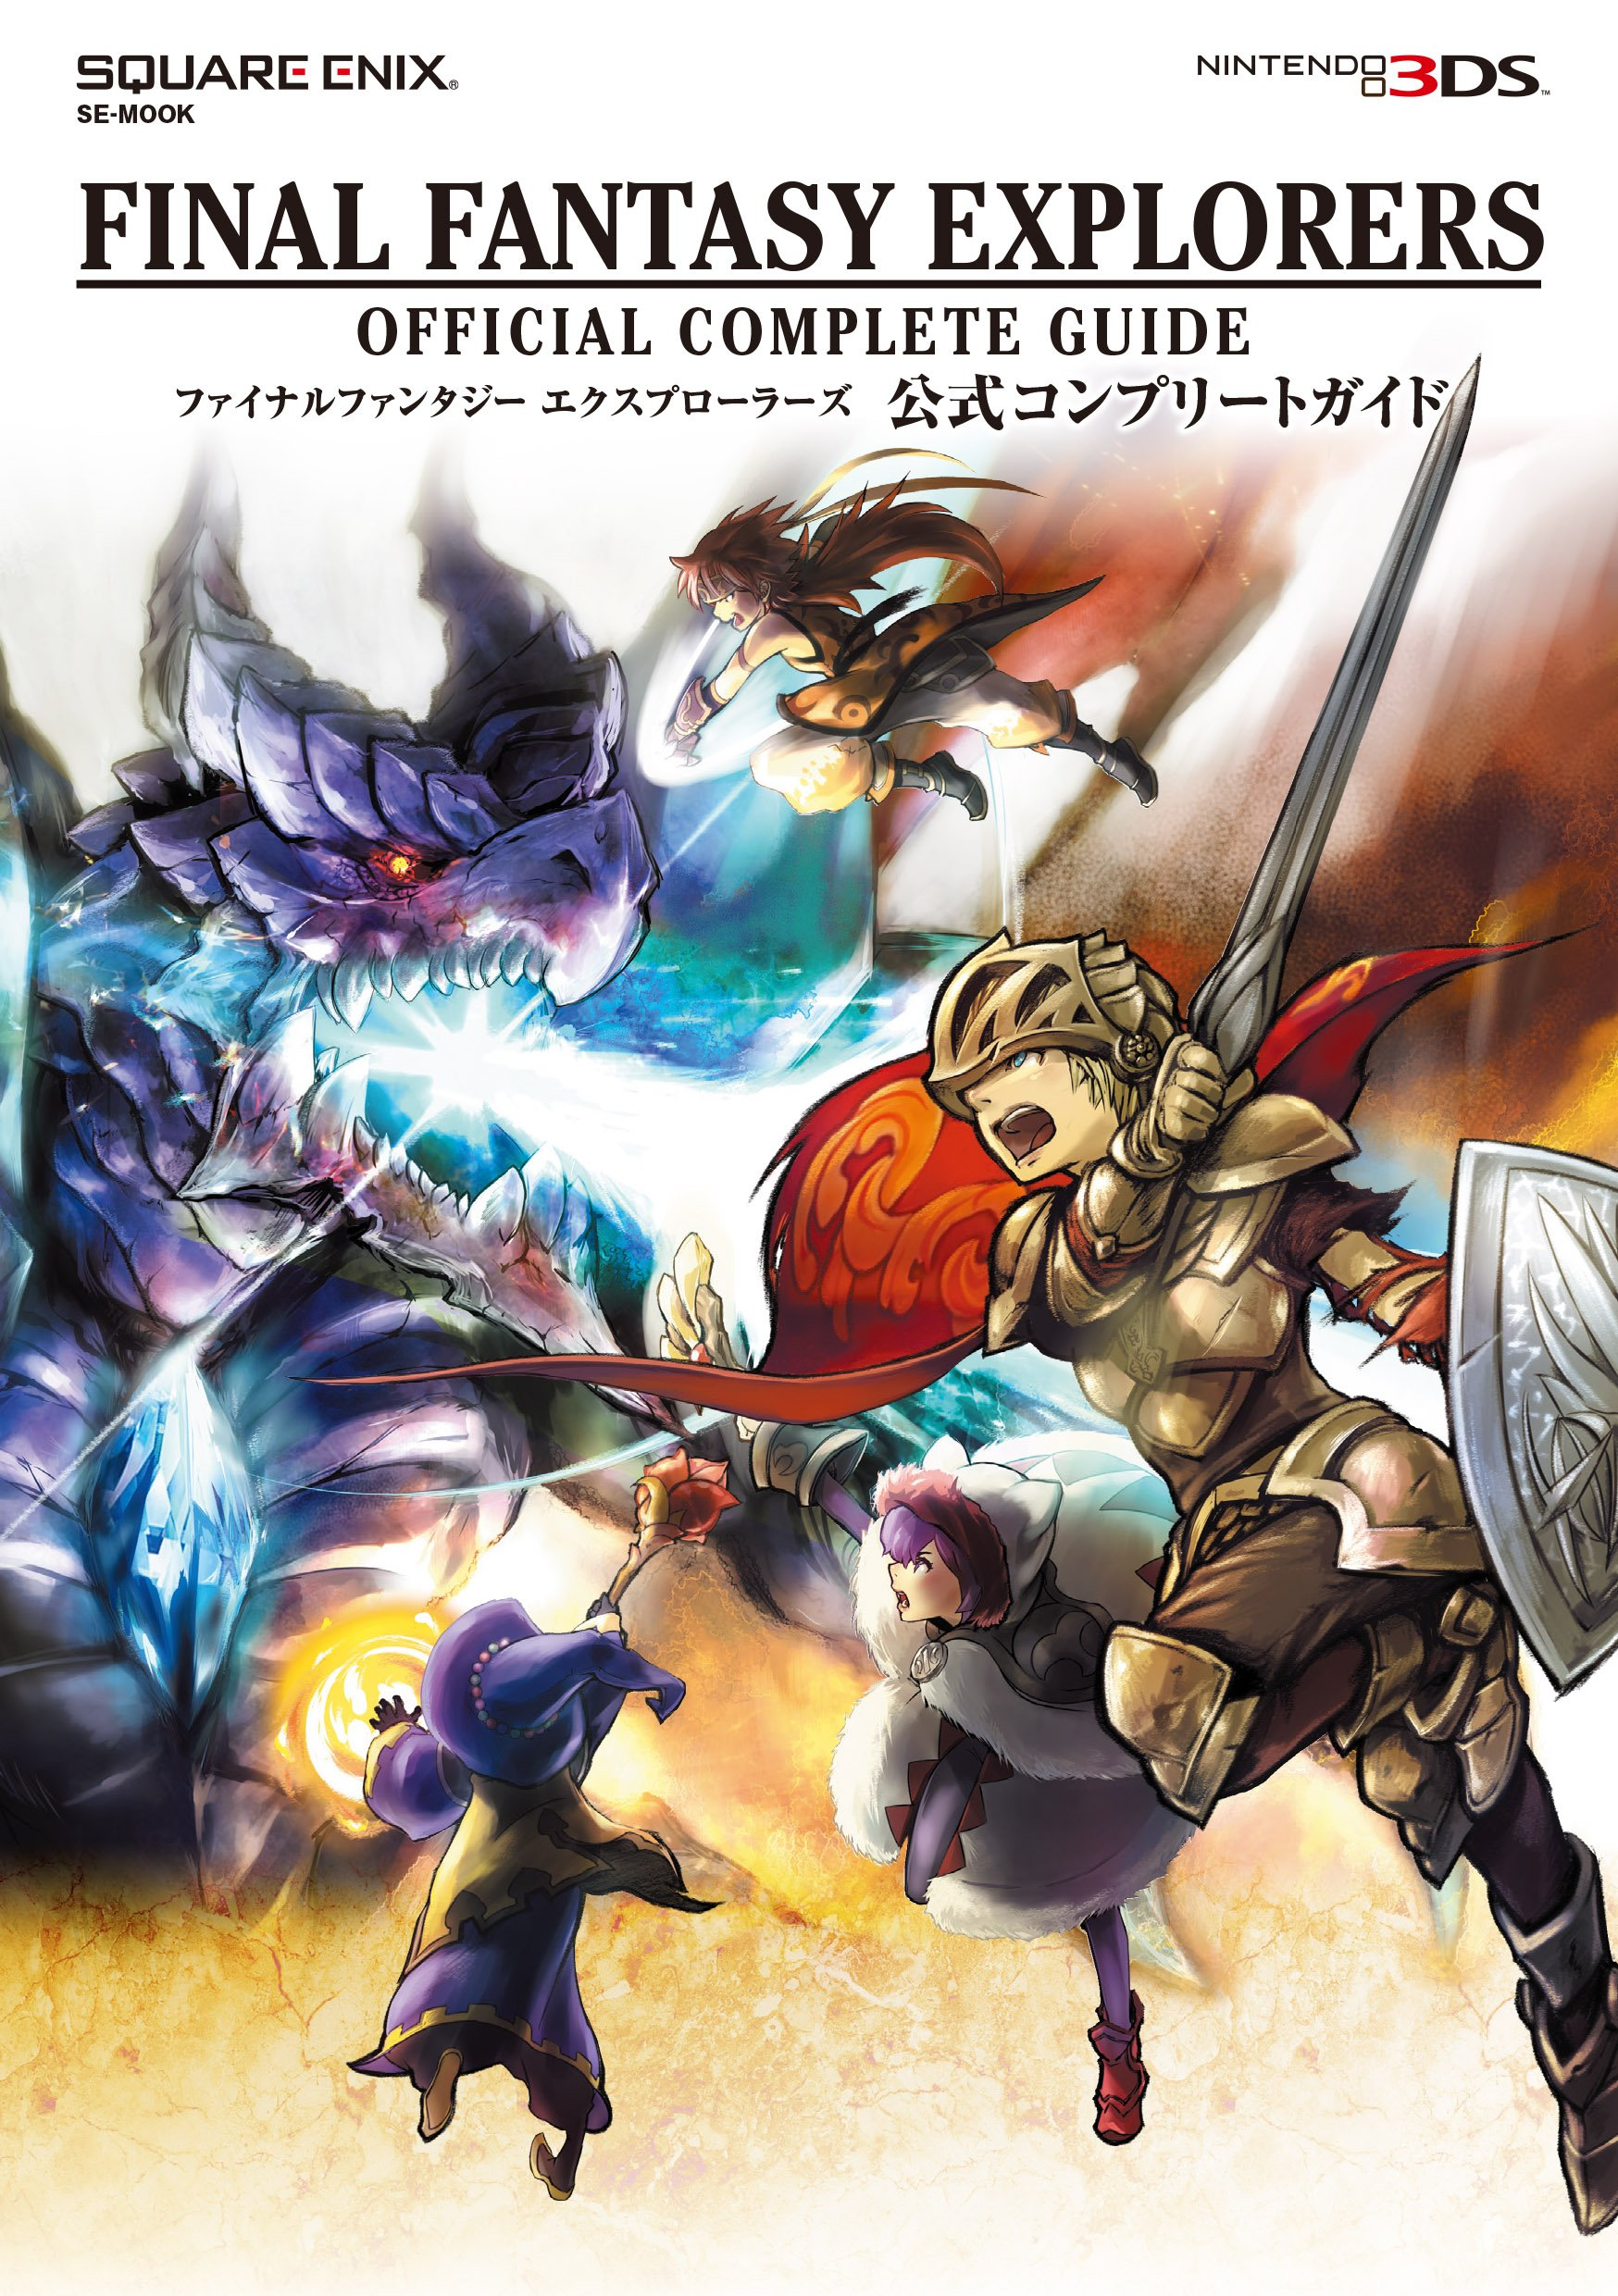 Final fantasy explorer's n3ds square enix official strategy guide.